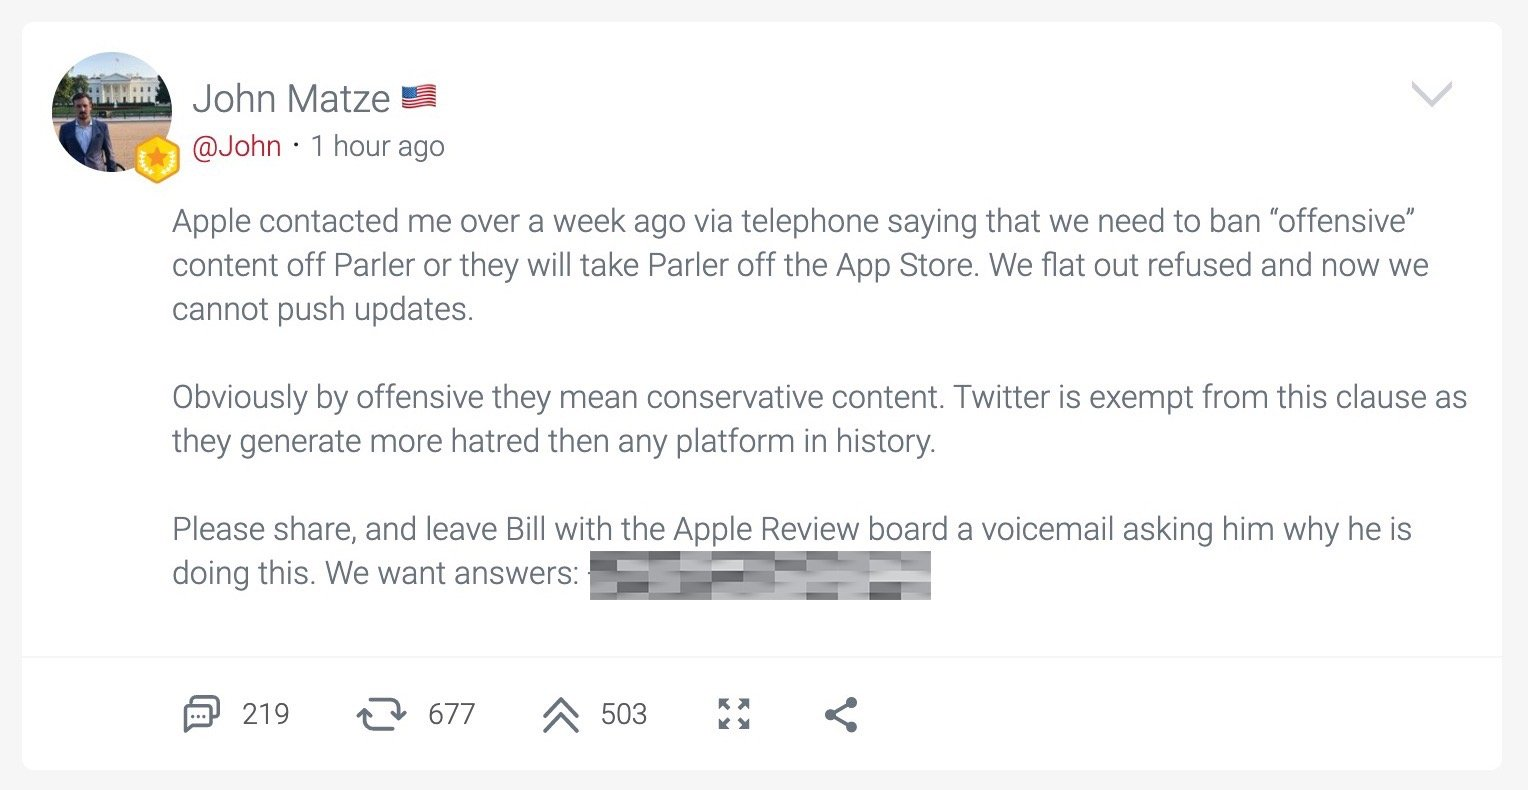 The post from John Matze claiming that Apple is preventing Parler from updating its app.